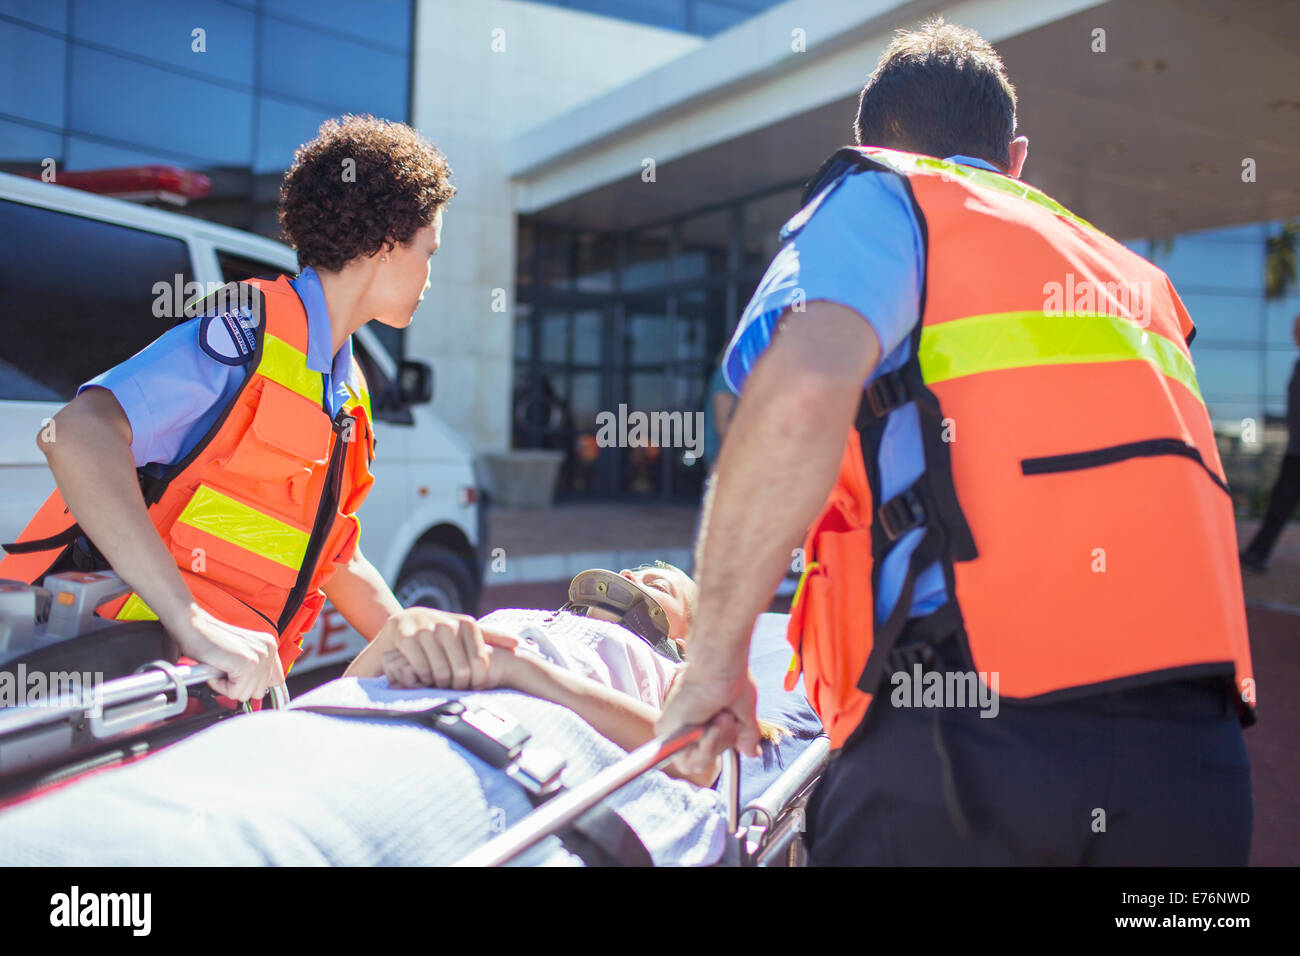 Paramedics wheeling patient in hospital parking lot - Stock Image